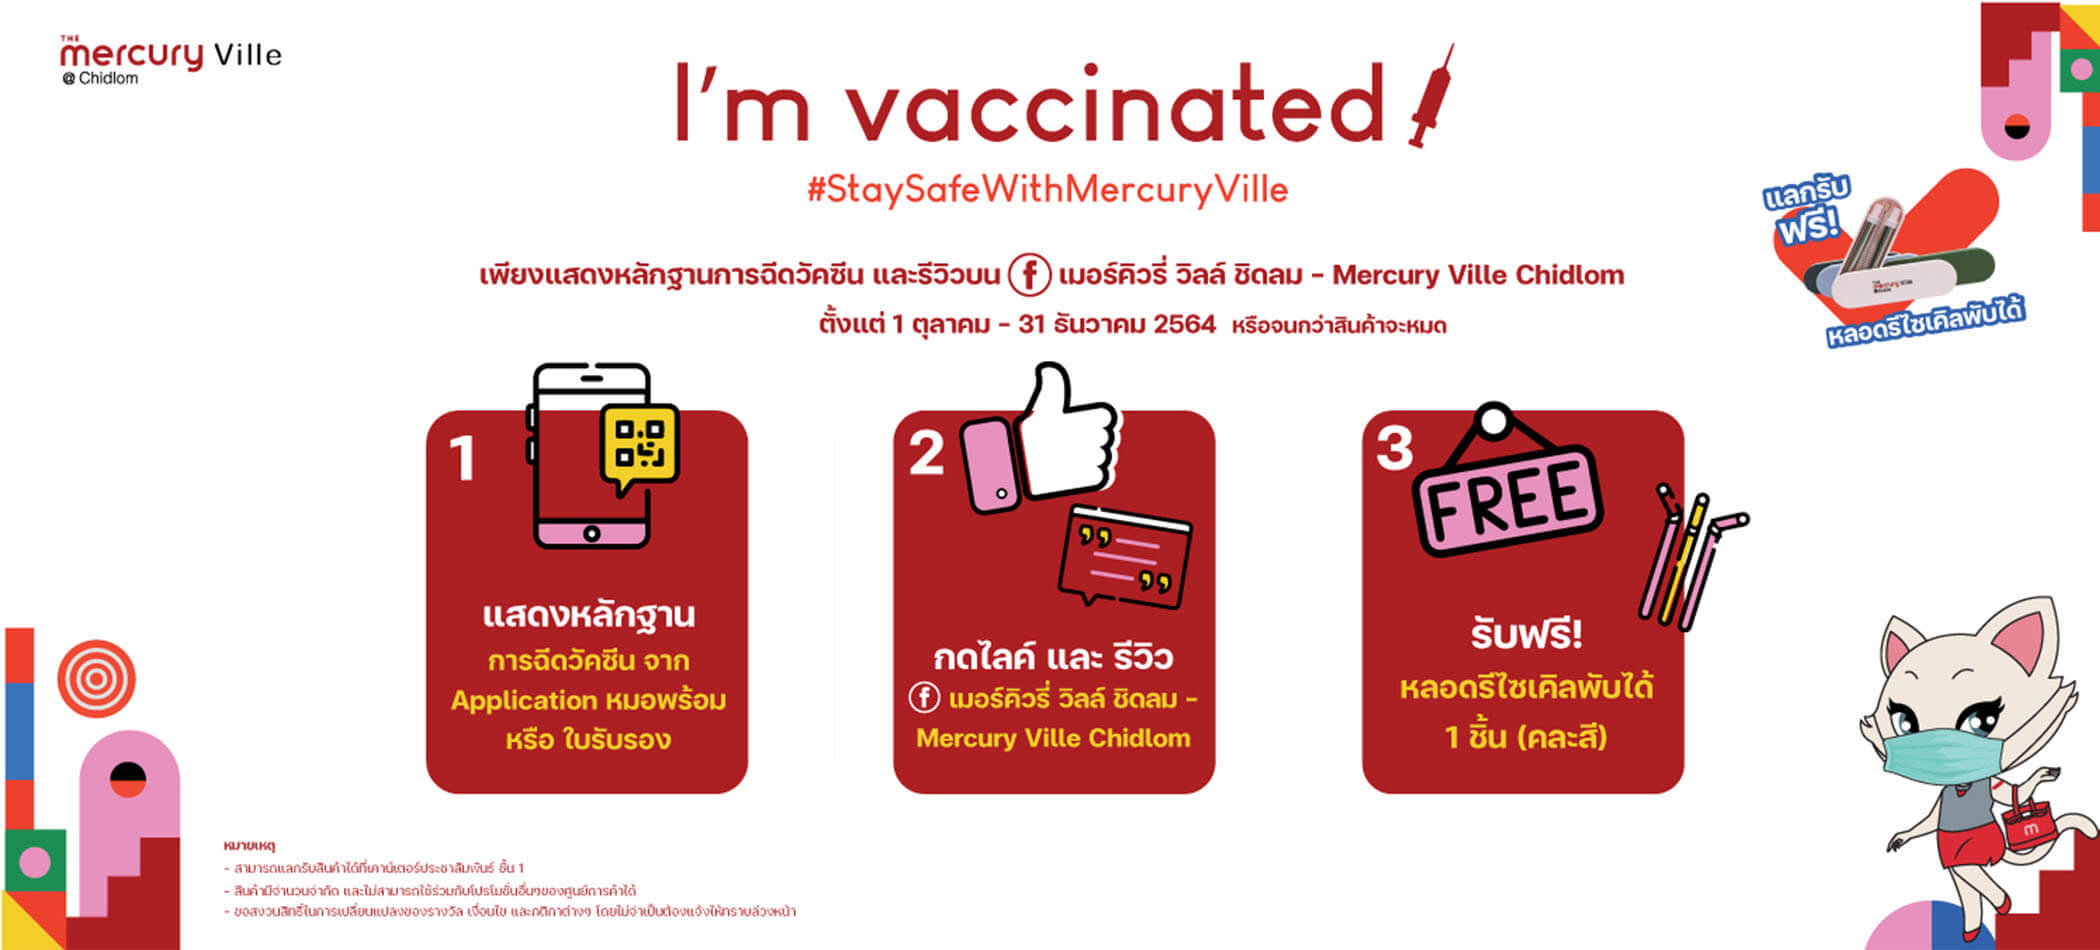 CAMPAIGN: I'm vaccinated!